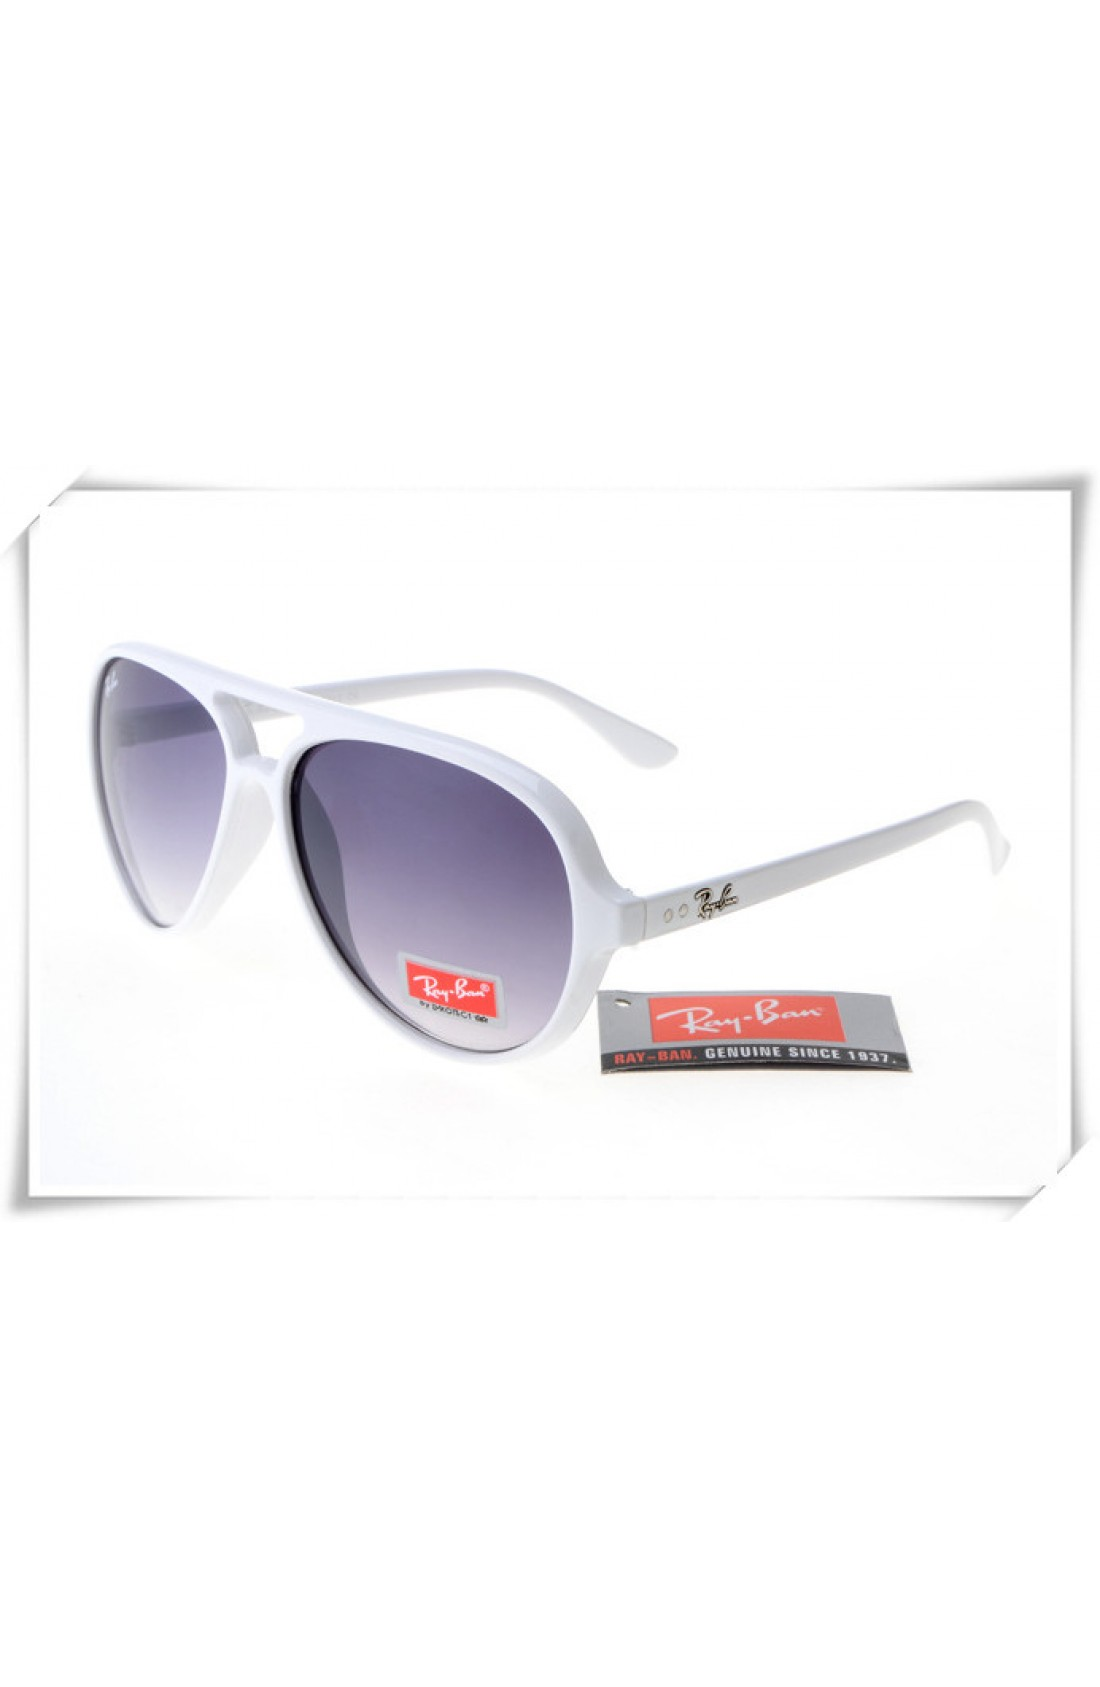 ba23ab9c25 Replica Ray Ban RB4125 Cats 5000 Sunglasses Polishing White Frame ...